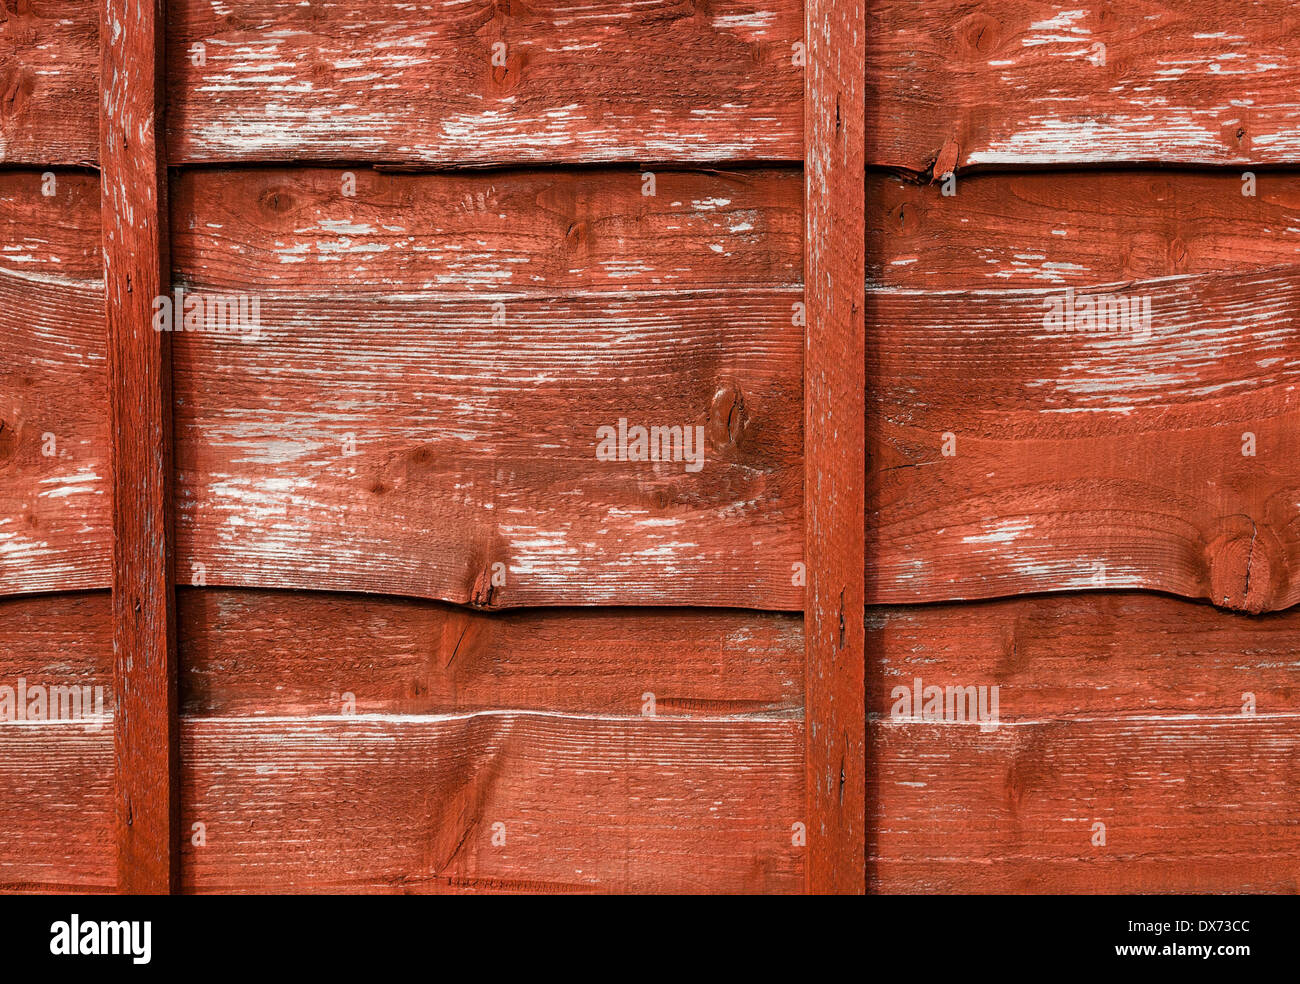 Red stained, rough wood fence panel; medium close, landscape orientation. - Stock Image